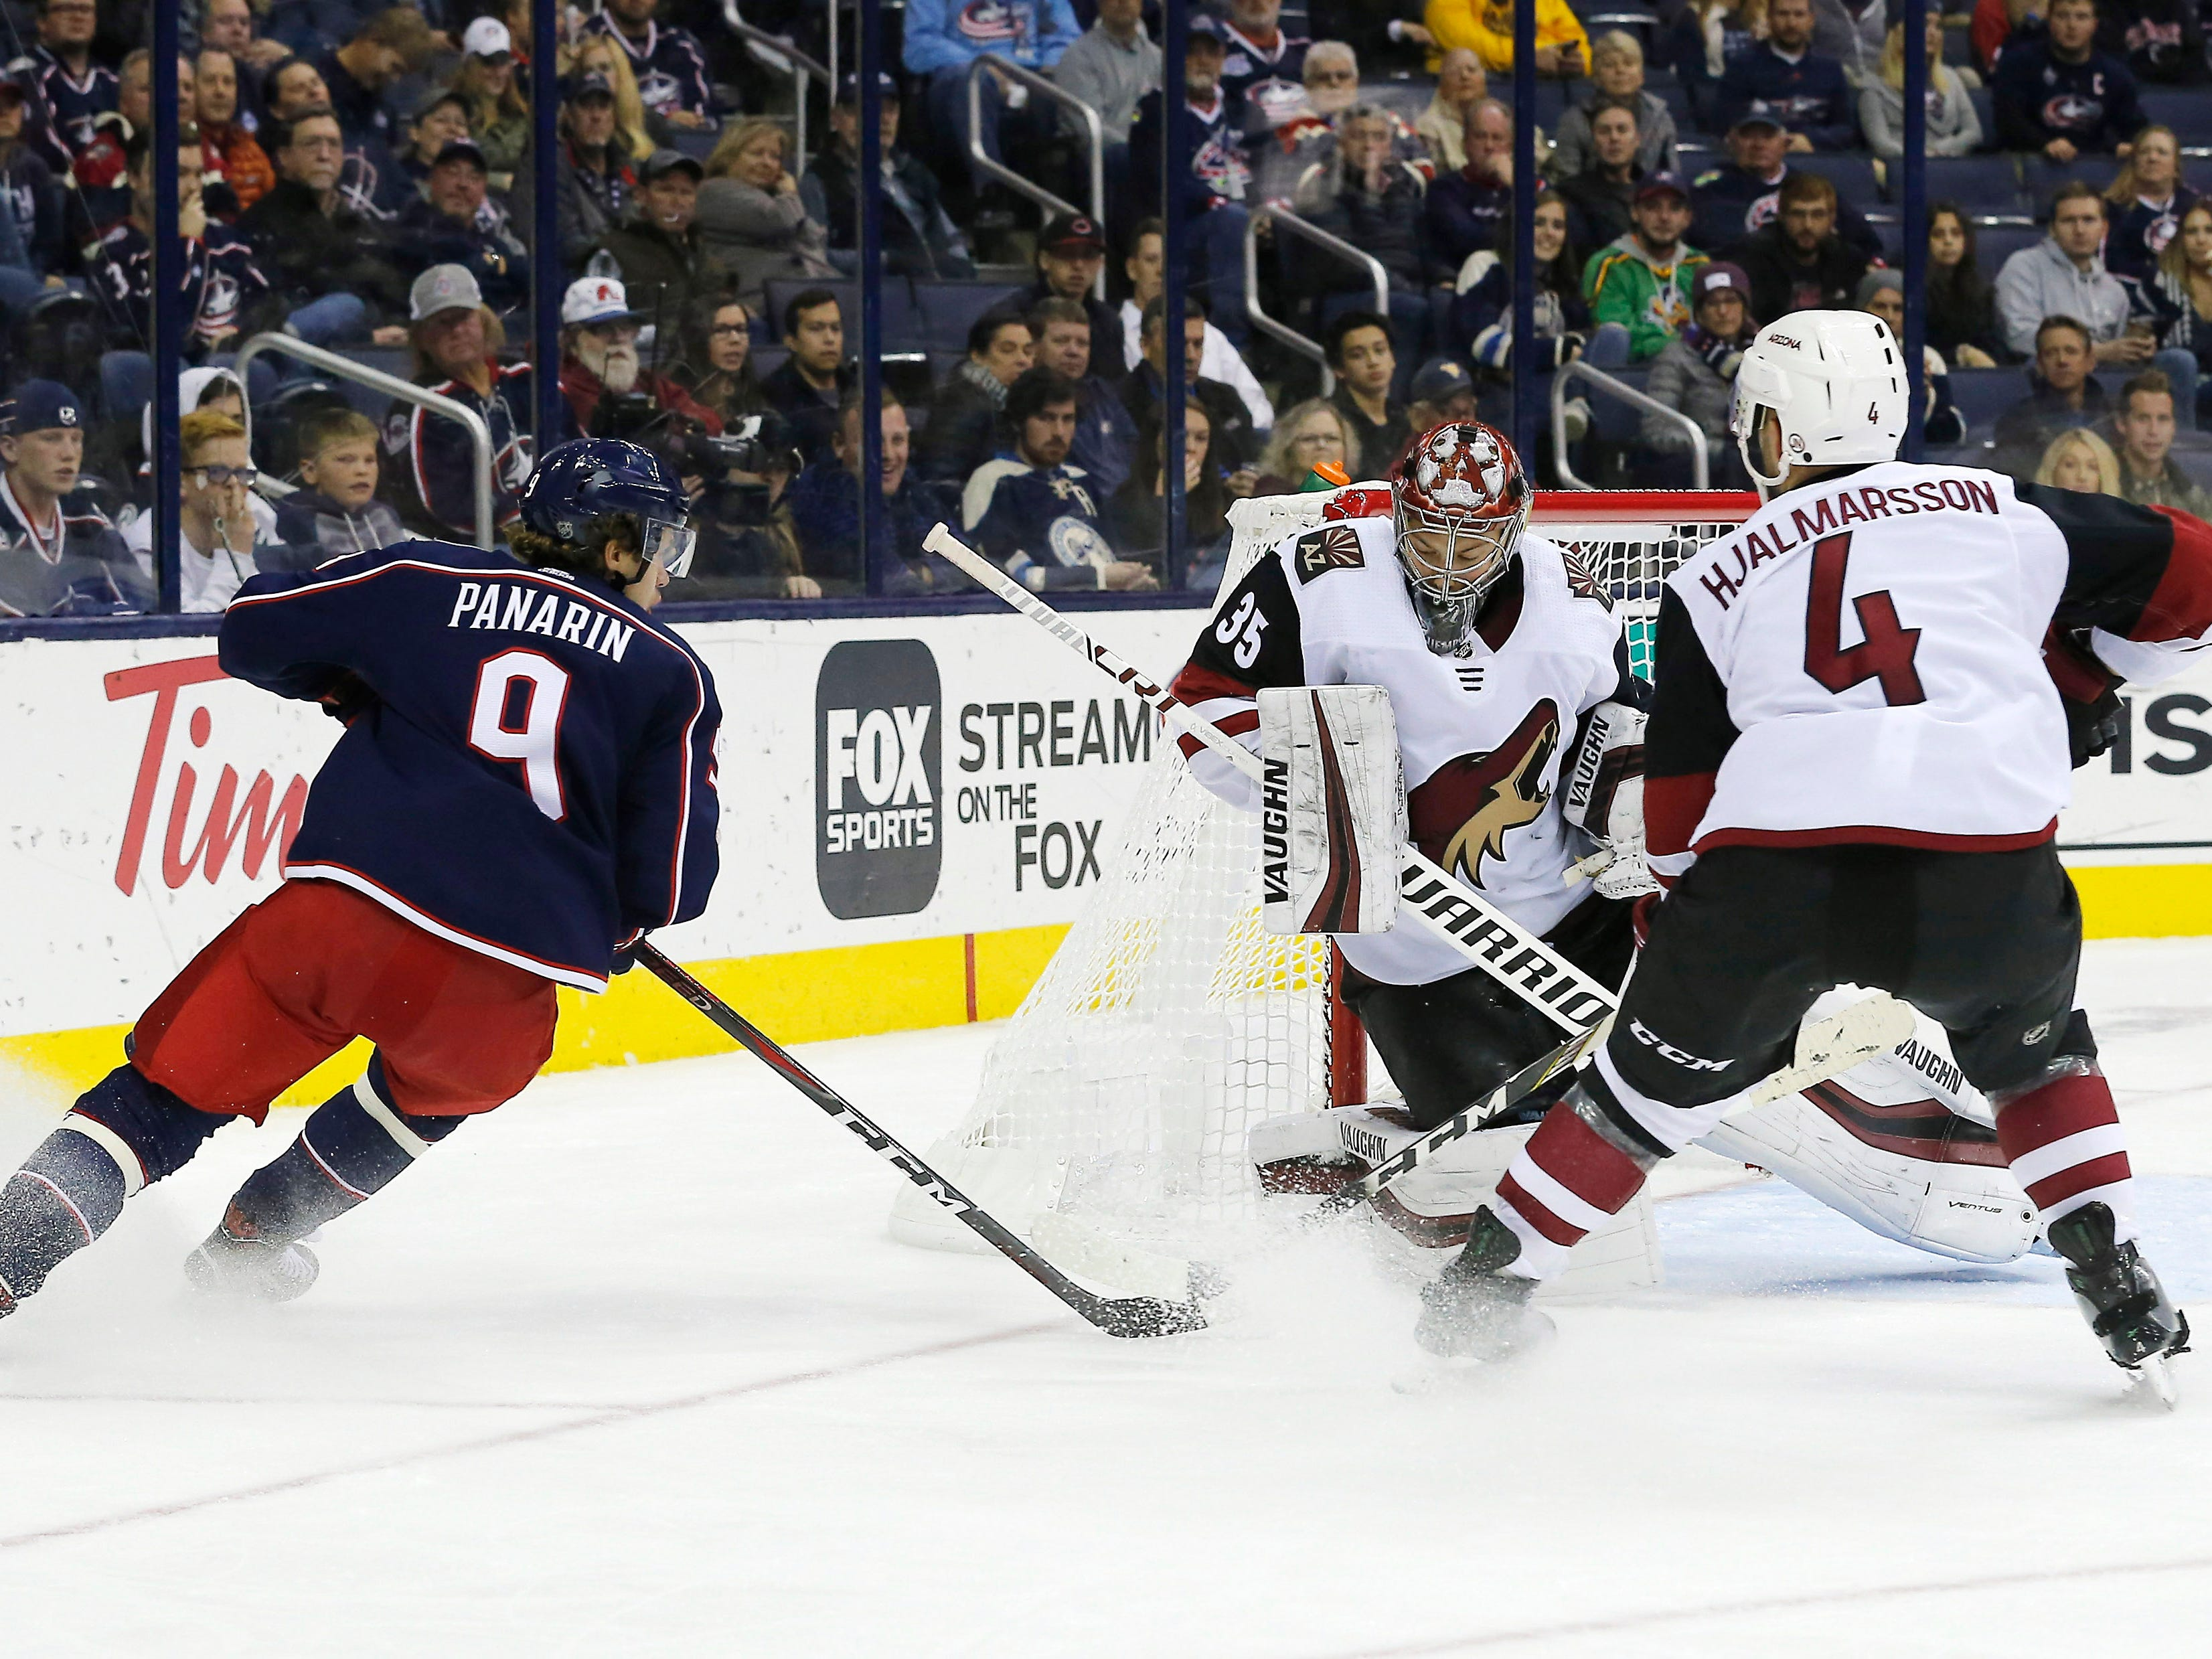 Oct 23, 2018; Columbus, OH, USA; Arizona Coyotes goalie Darcy Kuemper (35) makes a save against Columbus Blue Jackets left wing Artemi Panarin (9) during the third period at Nationwide Arena. Mandatory Credit: Russell LaBounty-USA TODAY Sports